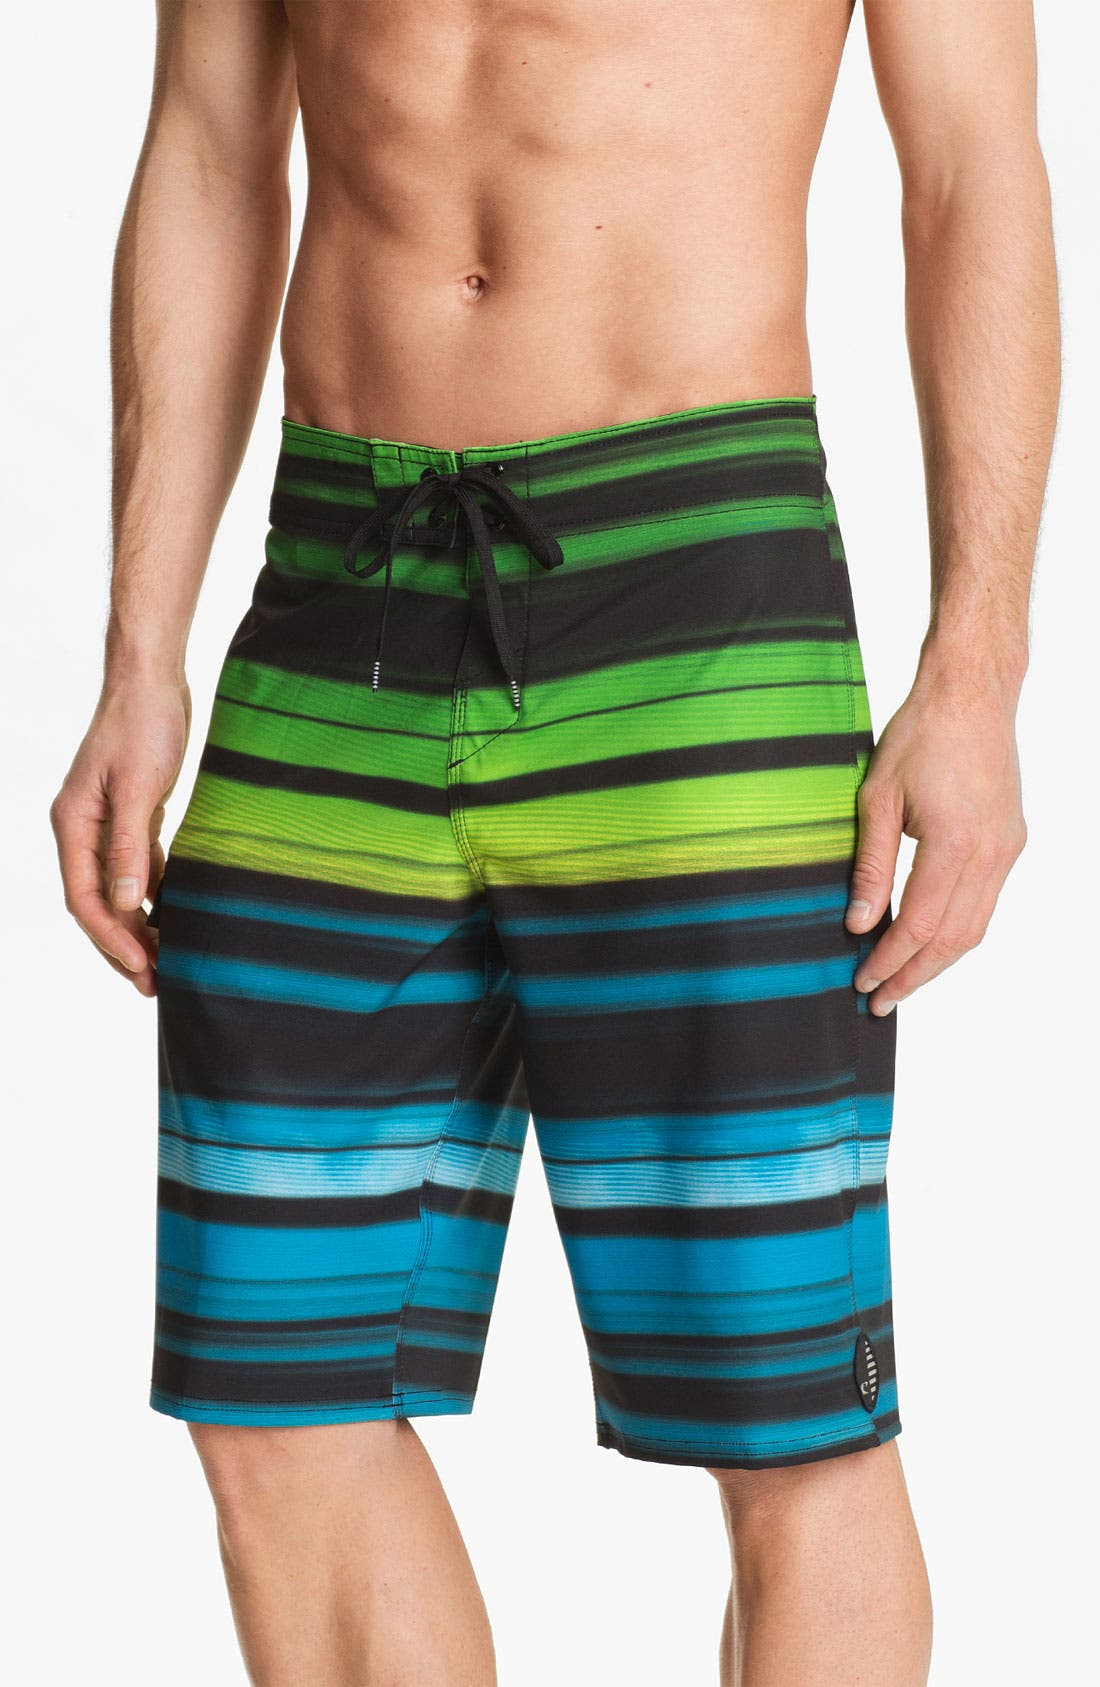 Alternate Image 1 Selected - O'Neill 'Passion' Board Shorts